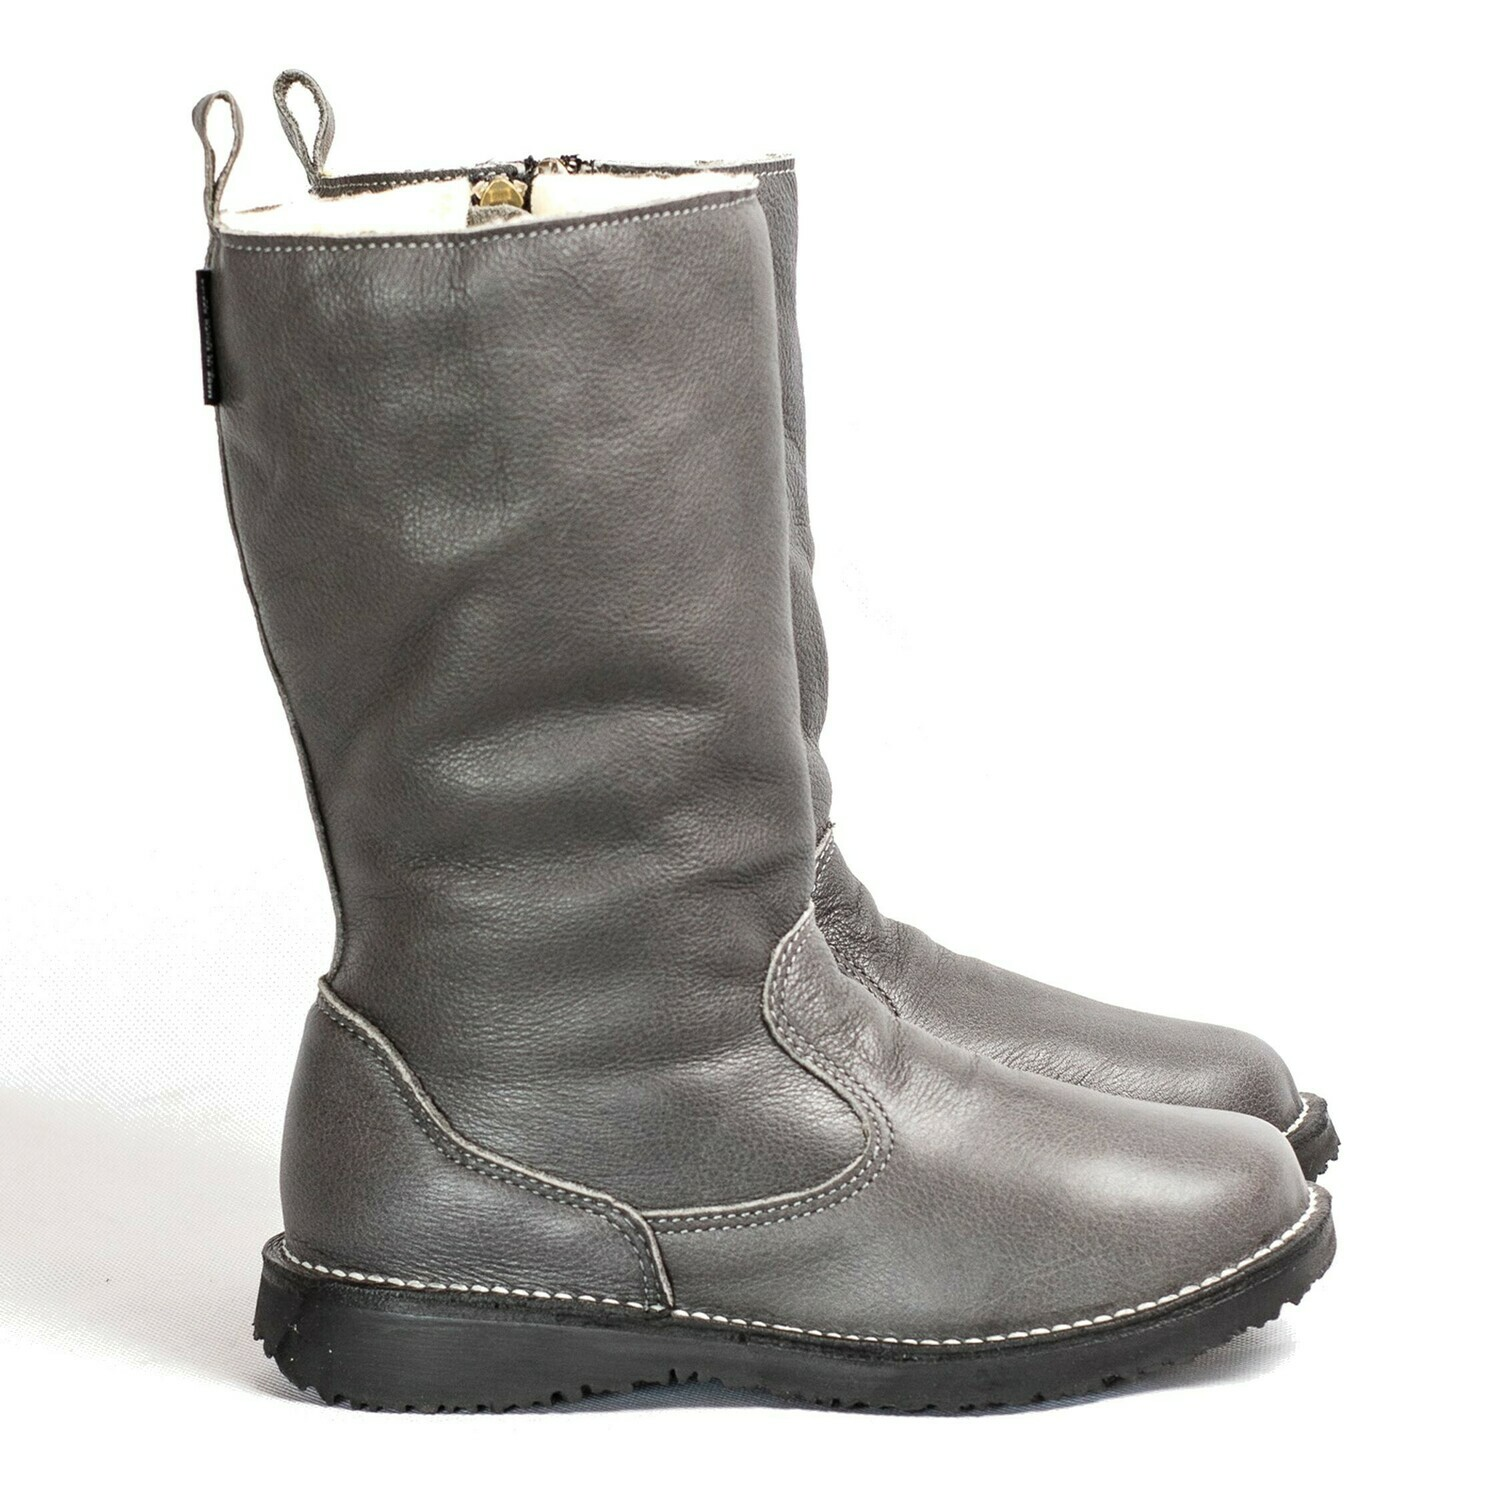 Eskimo Smoke wool-lined ladies leather boot